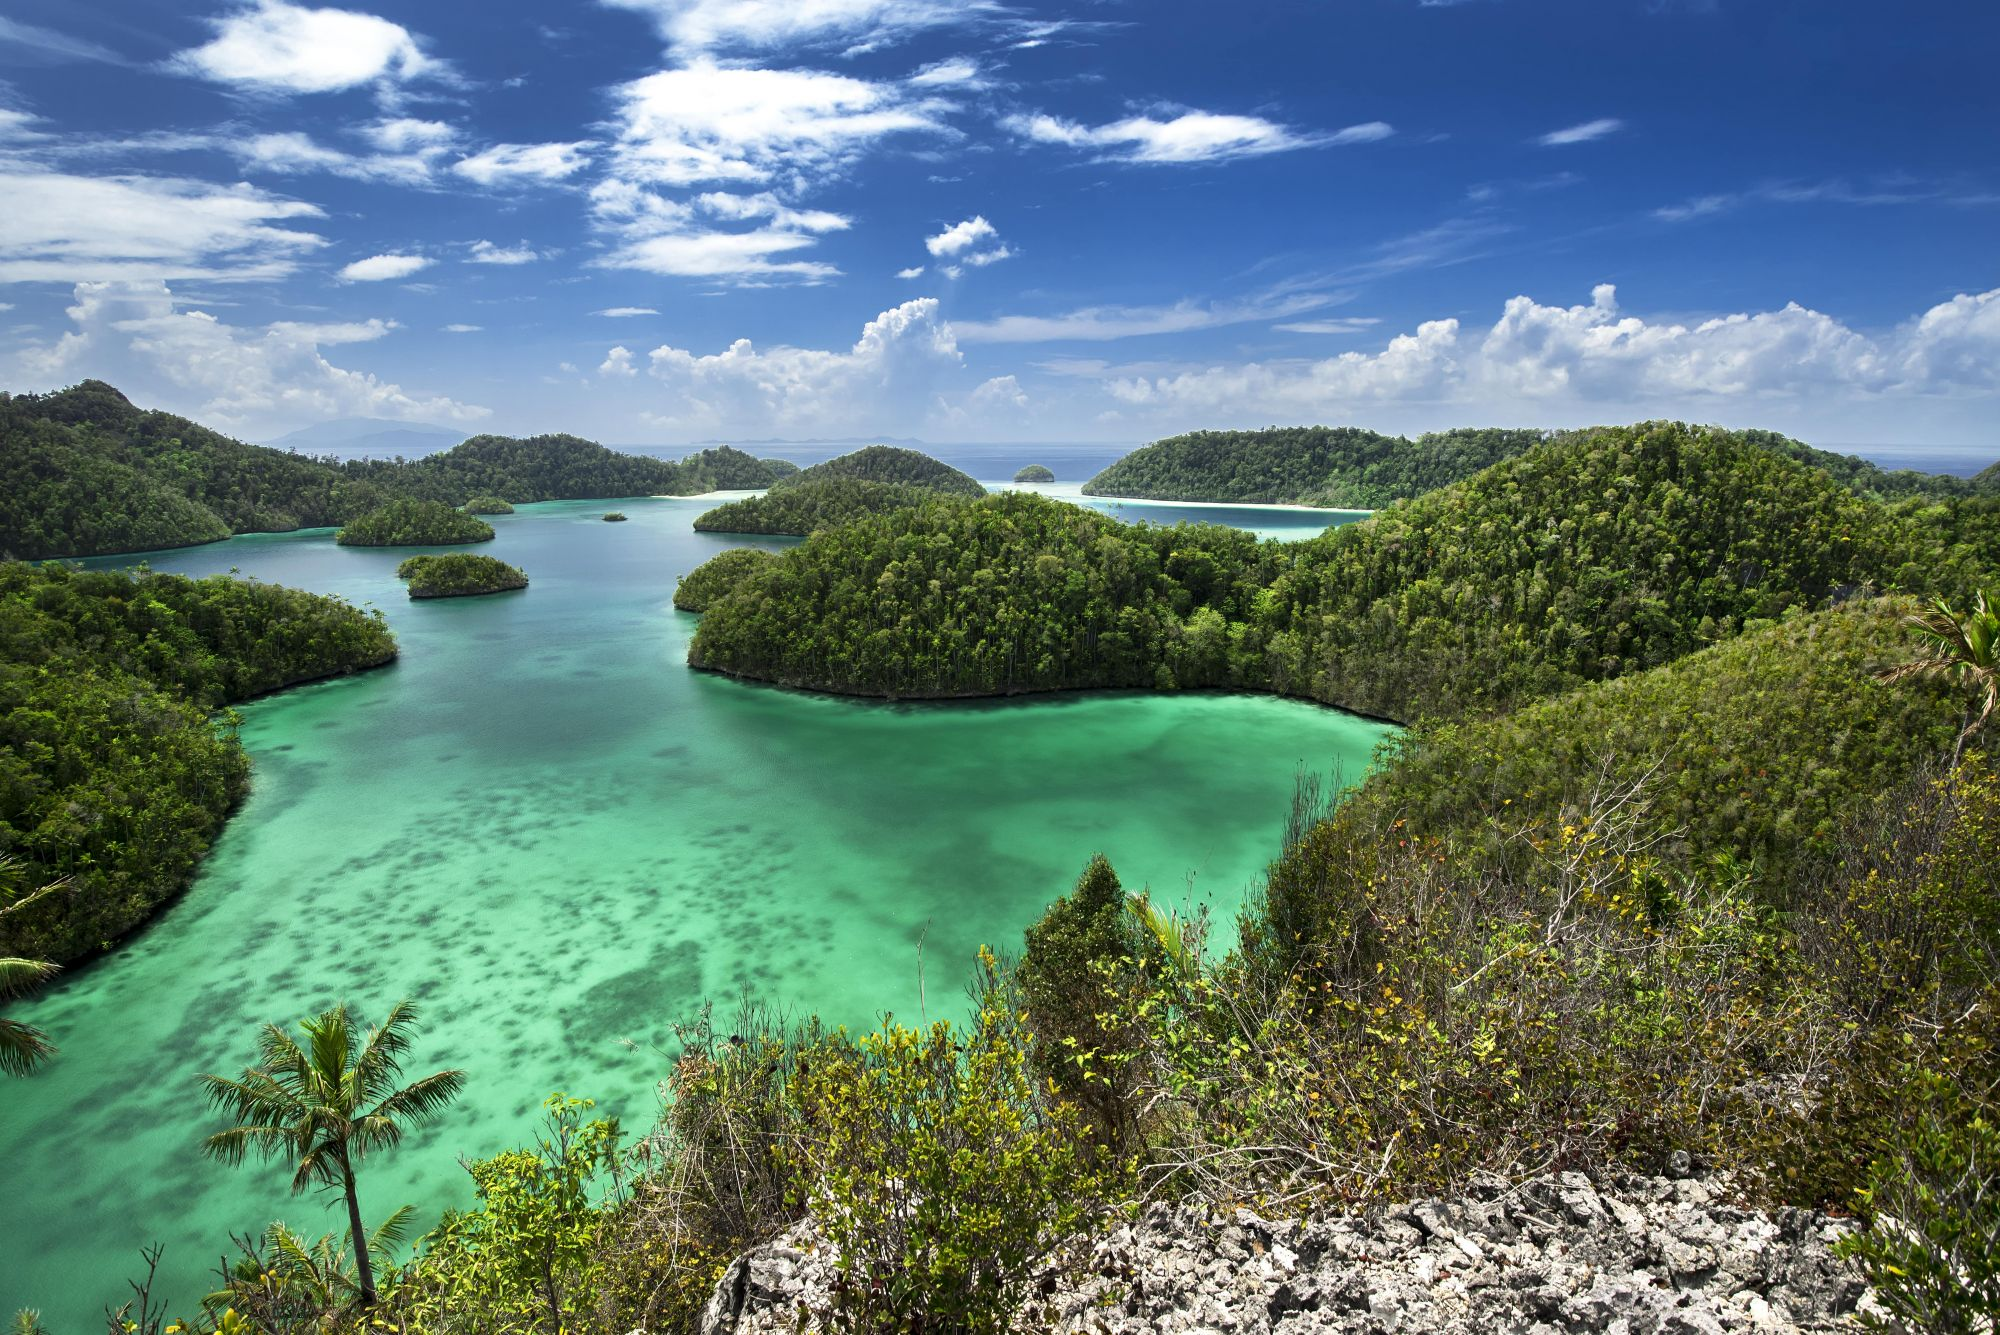 Prana By Atzaro: Exploring Raja Ampat On The World's Most Luxurious Liveaboard